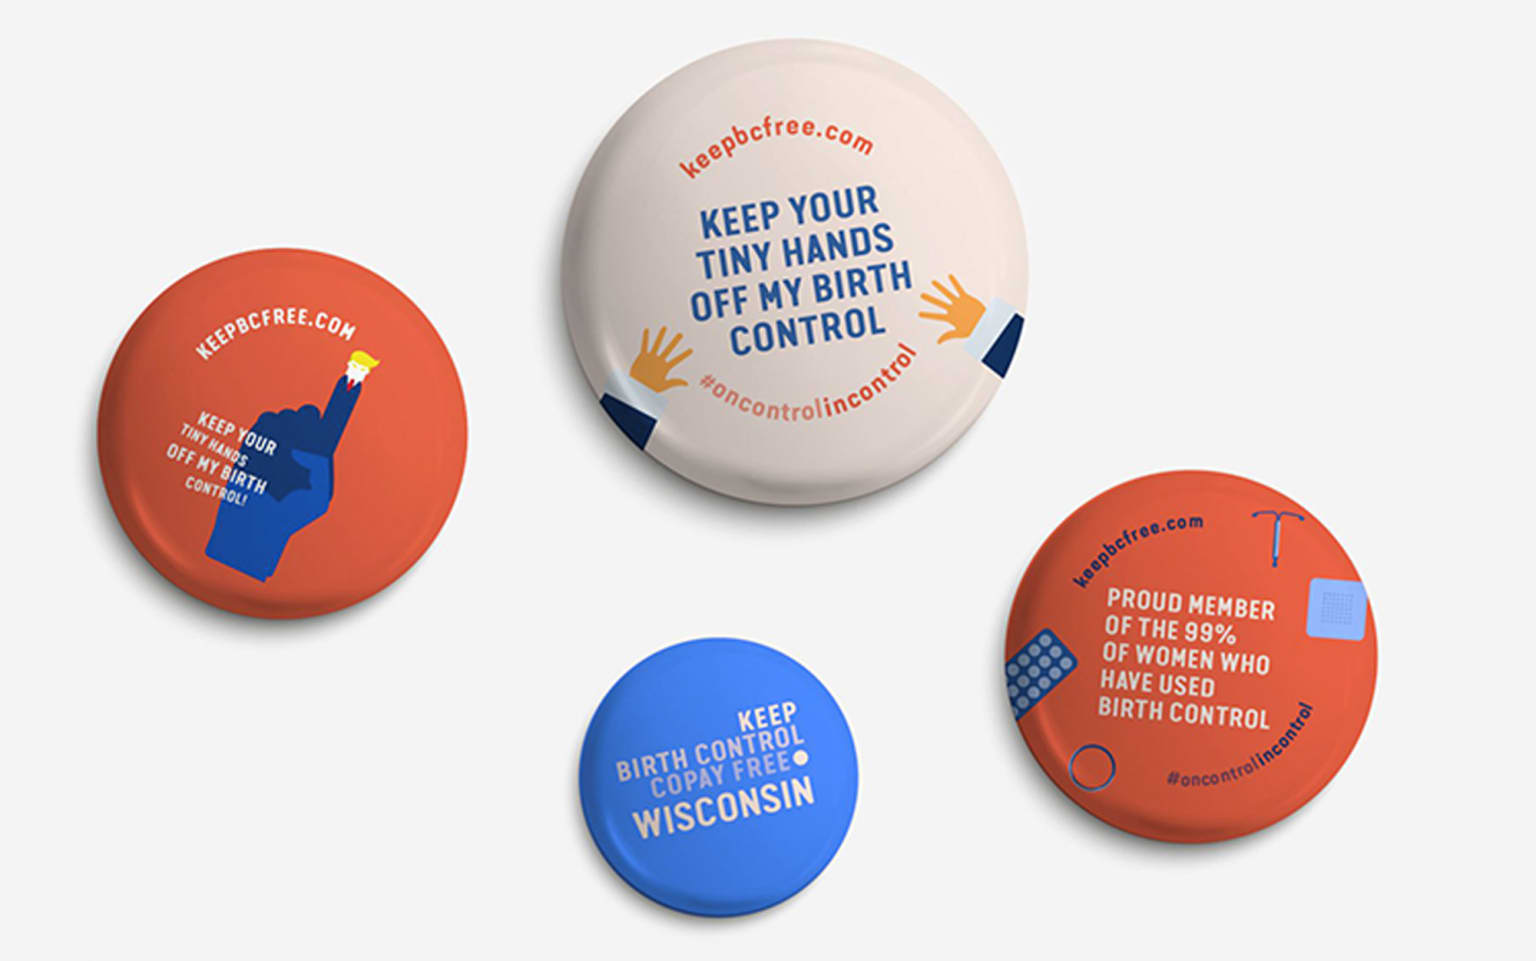 Campaign to Keep Birth Control CoPay Free